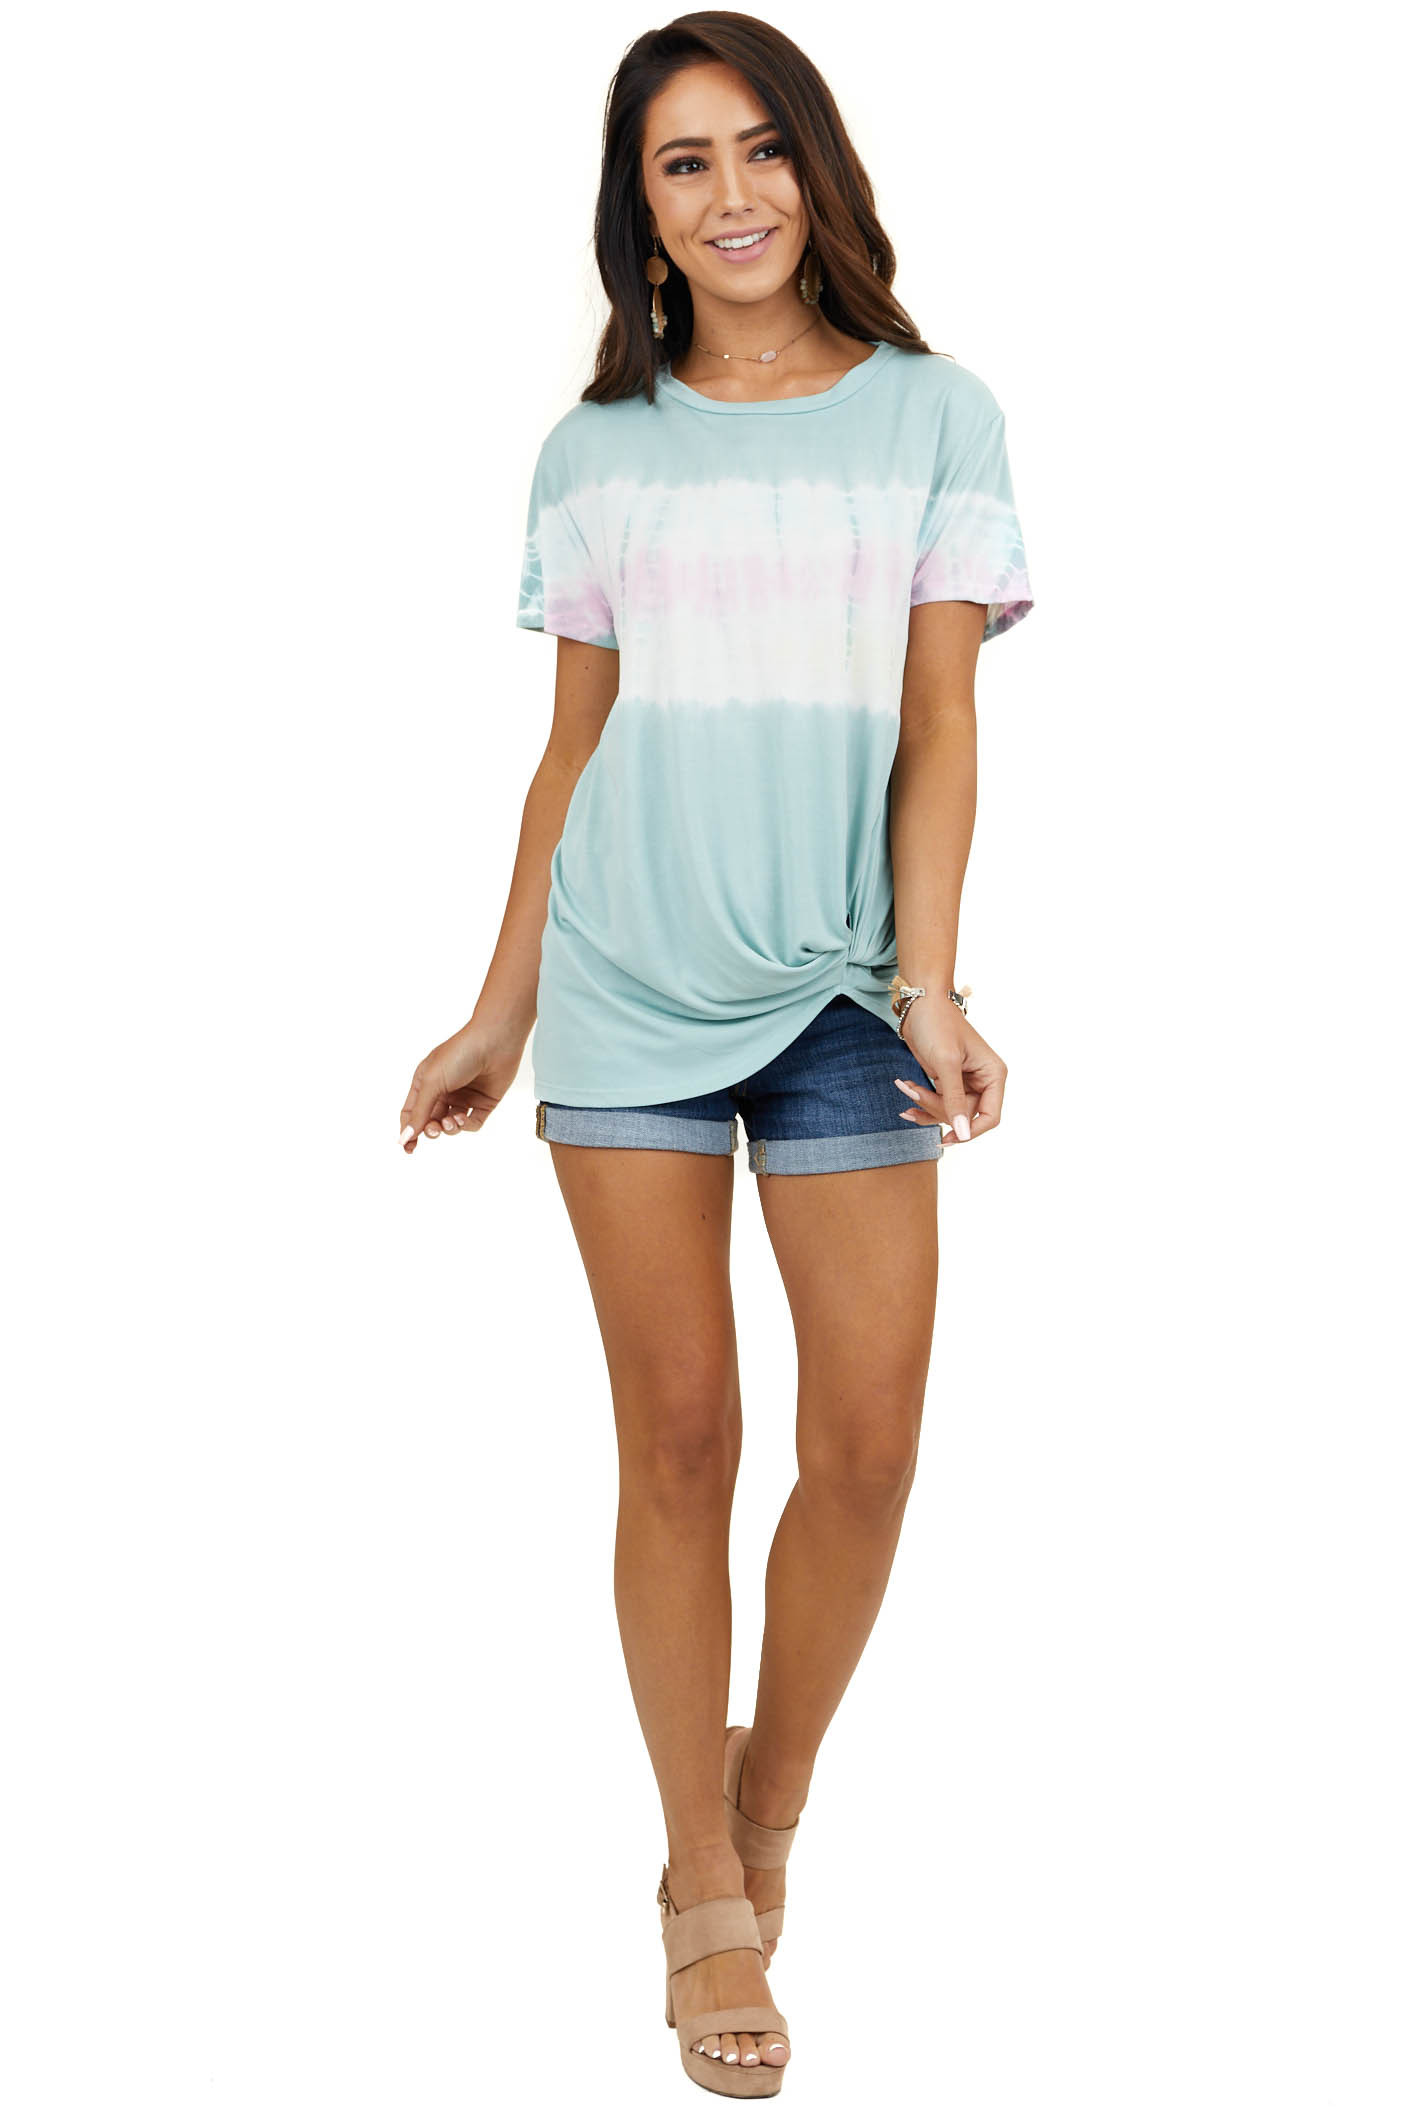 Seafoam Tie Dye Short Sleeve Knit Top with Twisted Detail